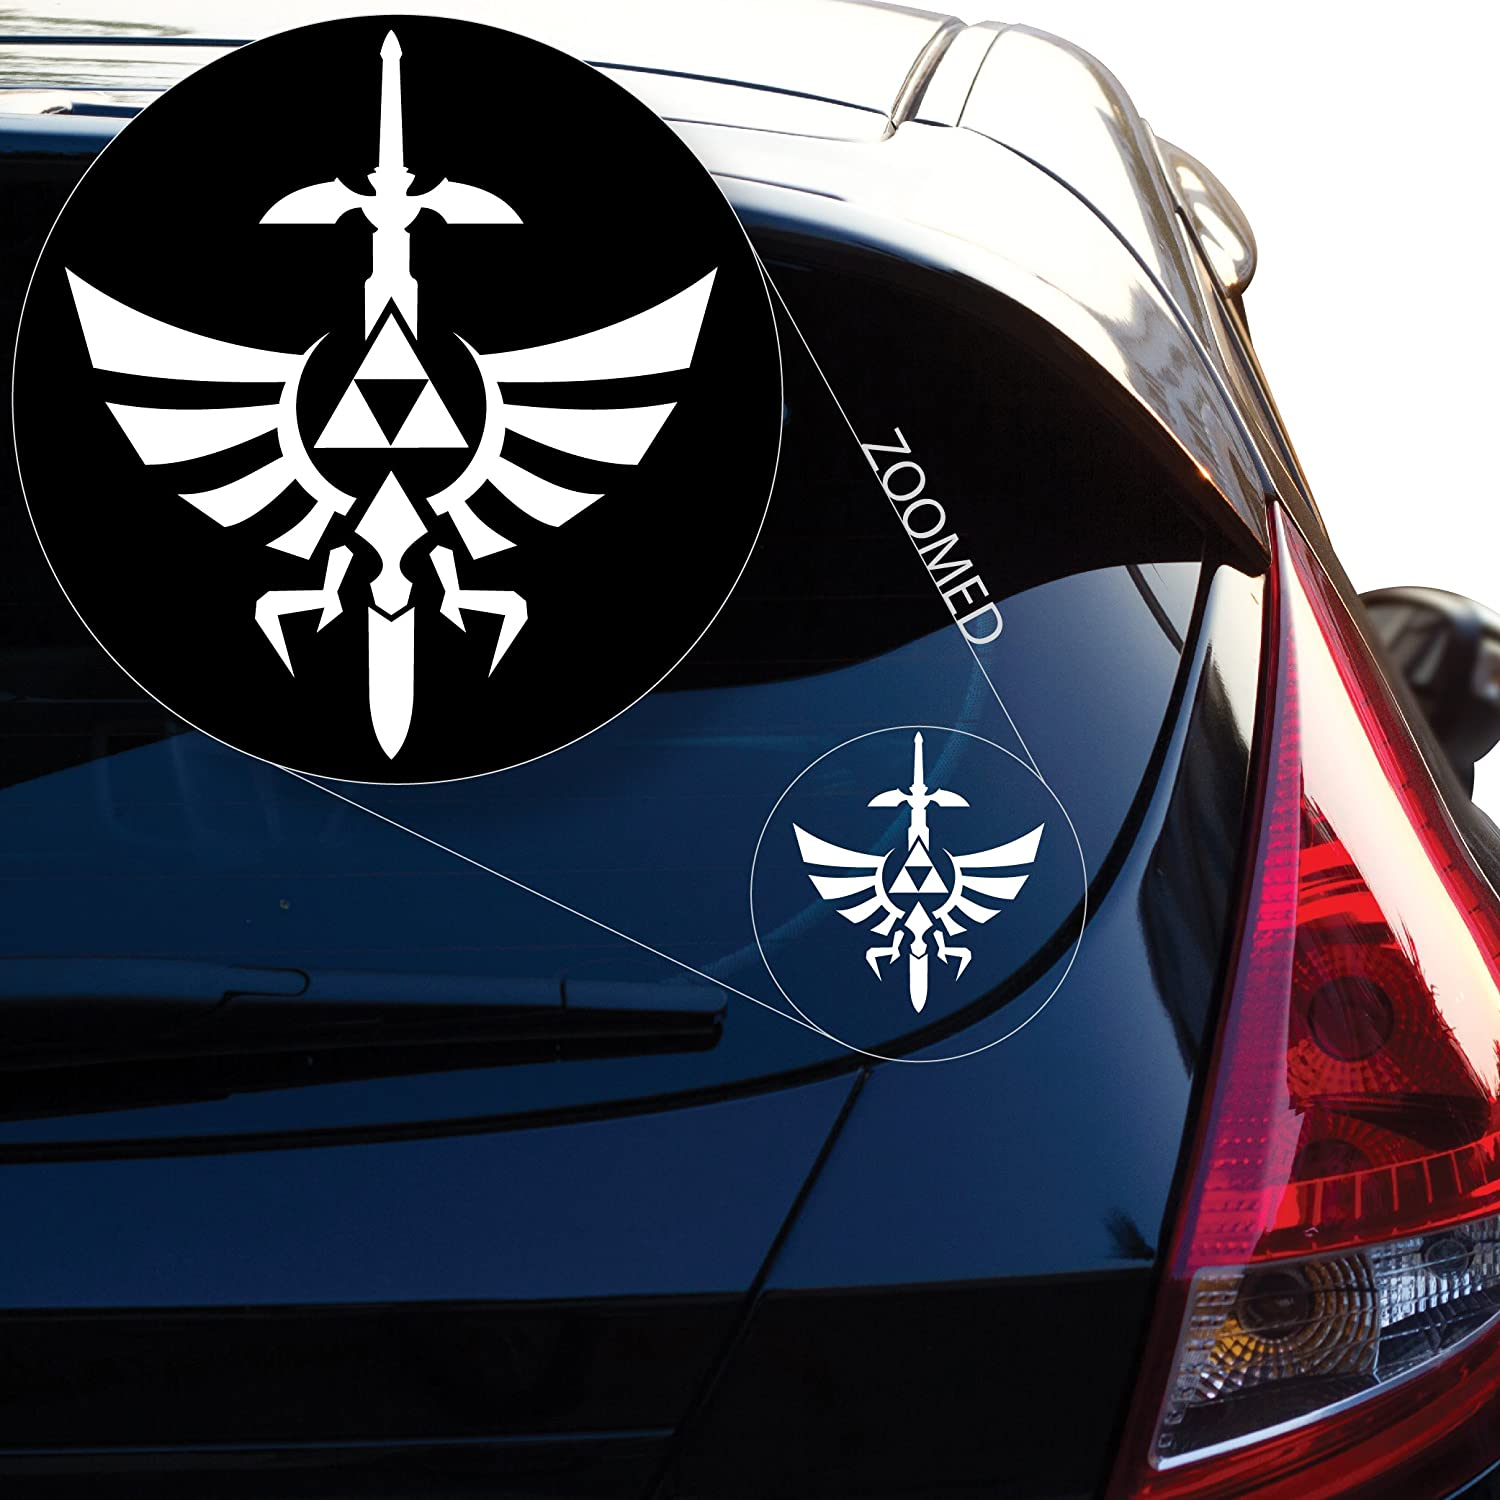 """Yoonek Graphics Zelda Triforce with Sword Decal Sticker for Car Window, Laptop, Motorcycle, Walls, Mirror and More. # 554 (4"""" x 3.6"""", White)"""